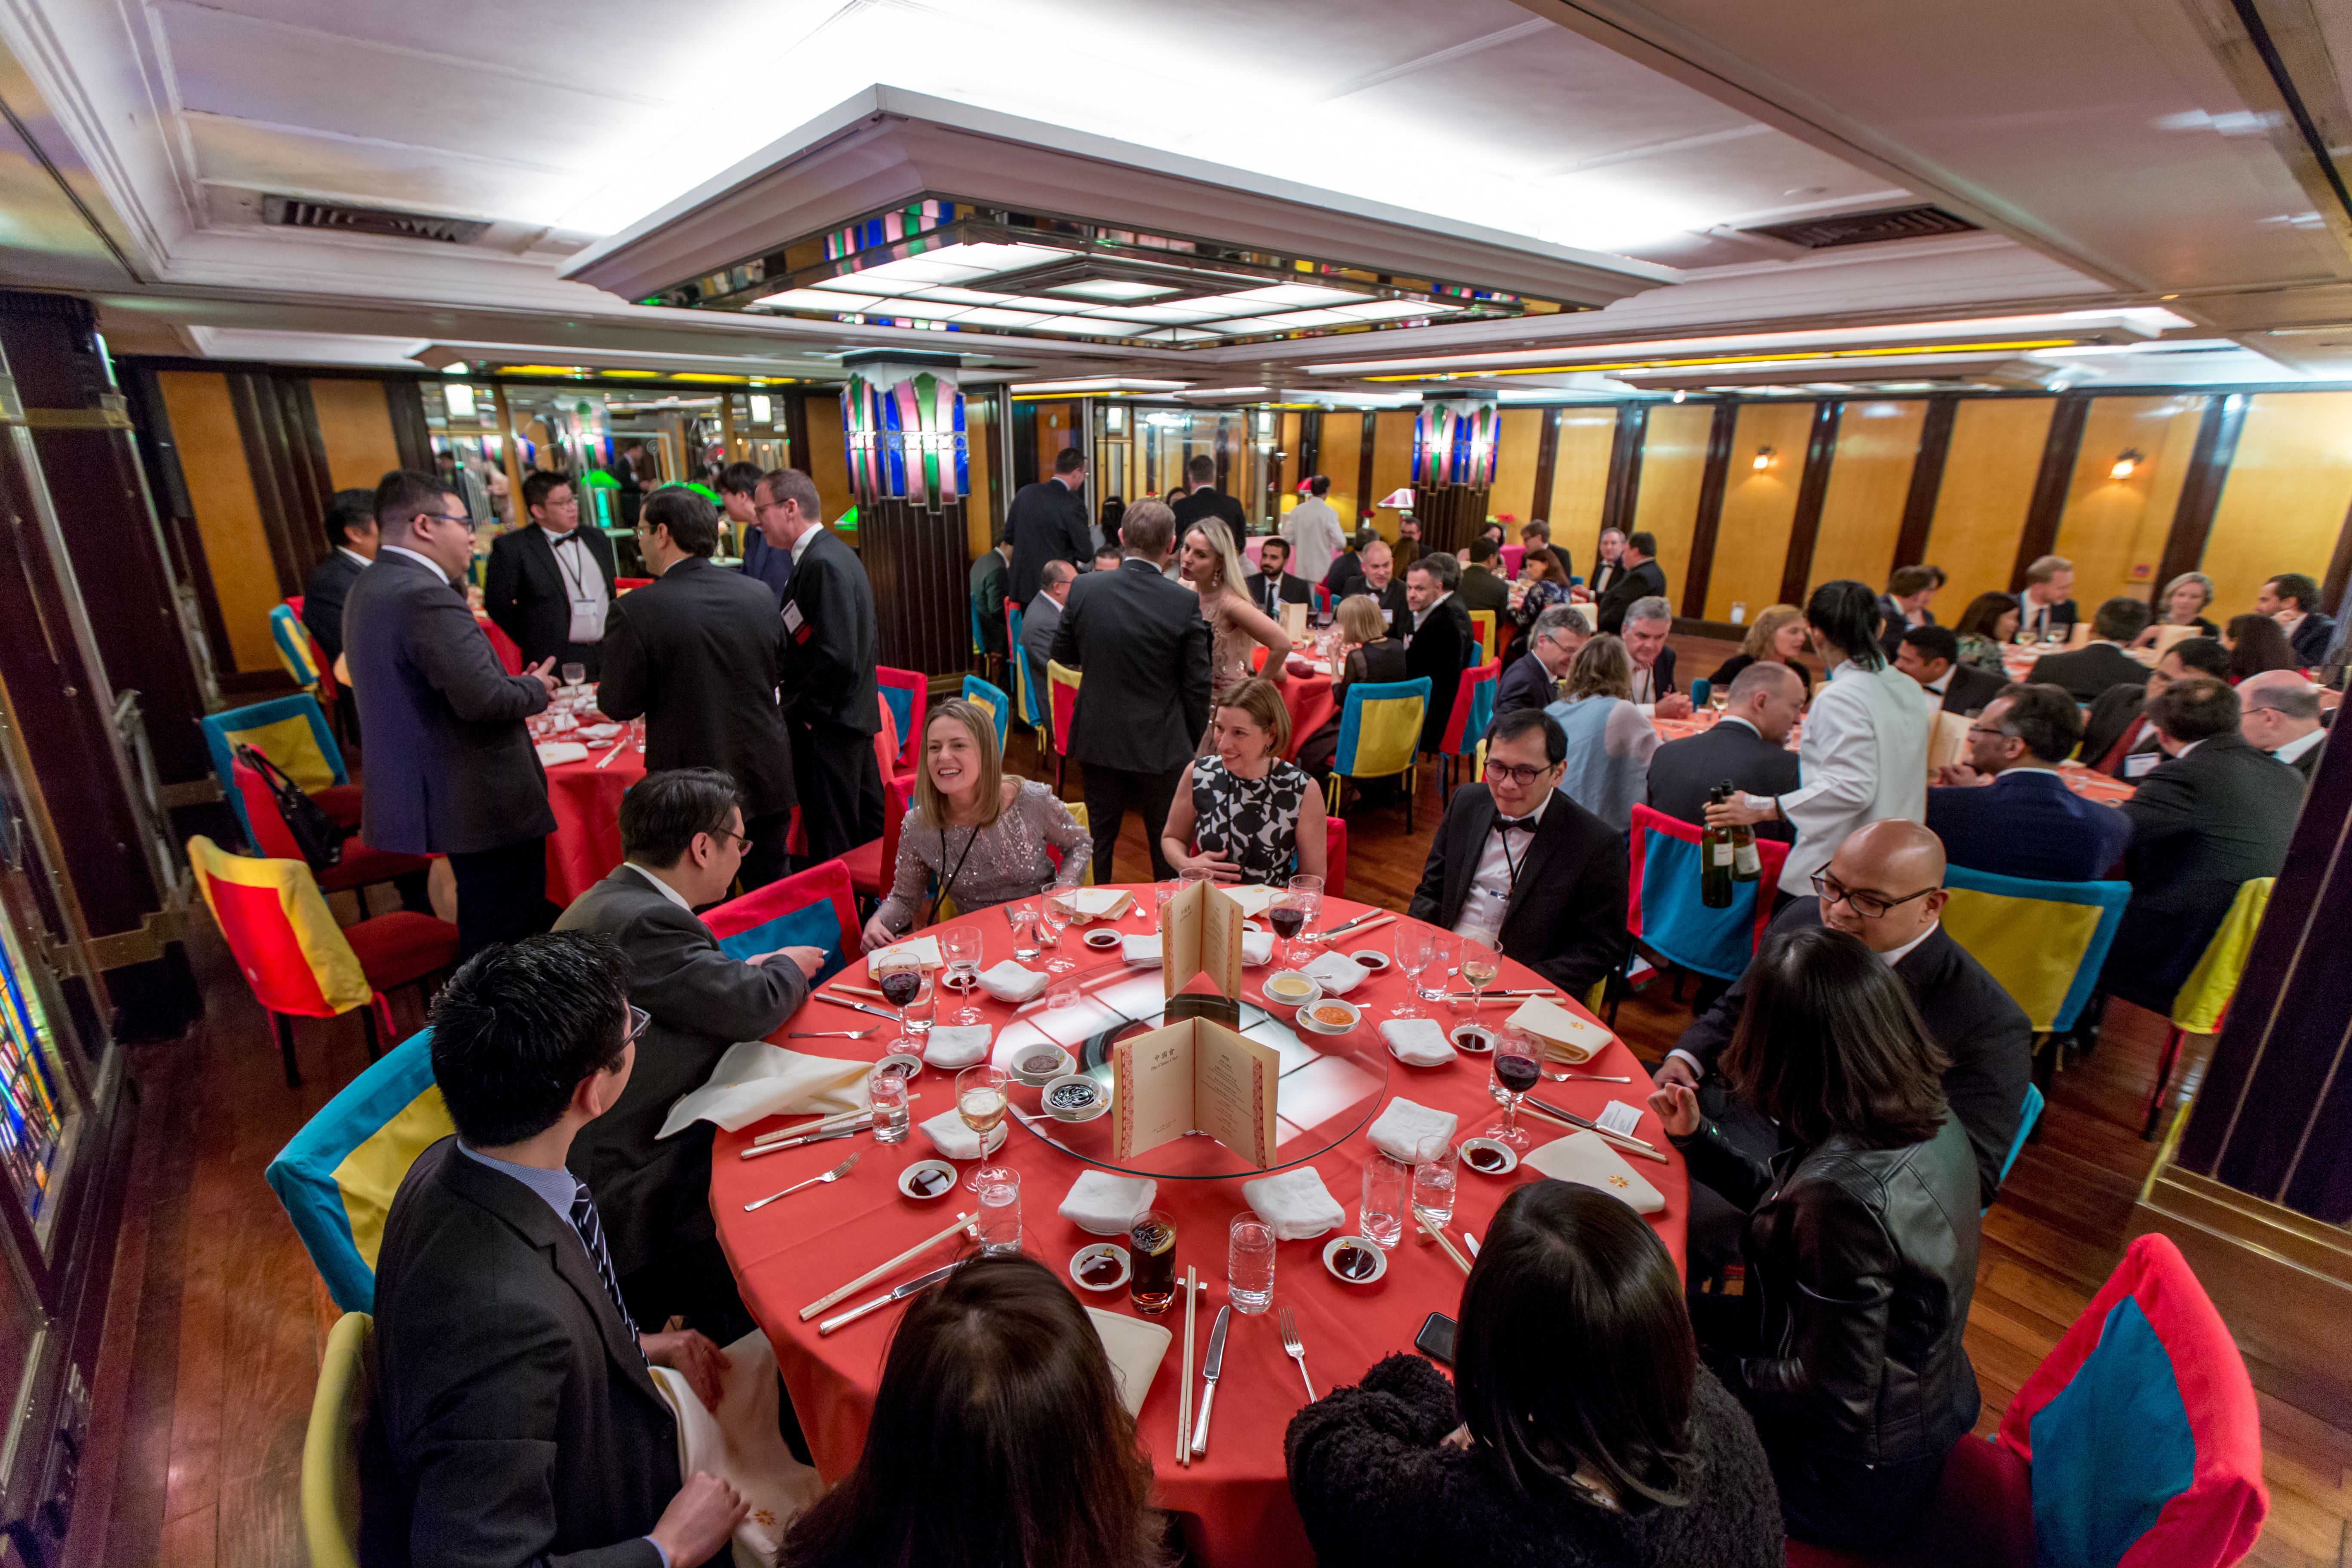 Gala at the China Club of Hong Kong